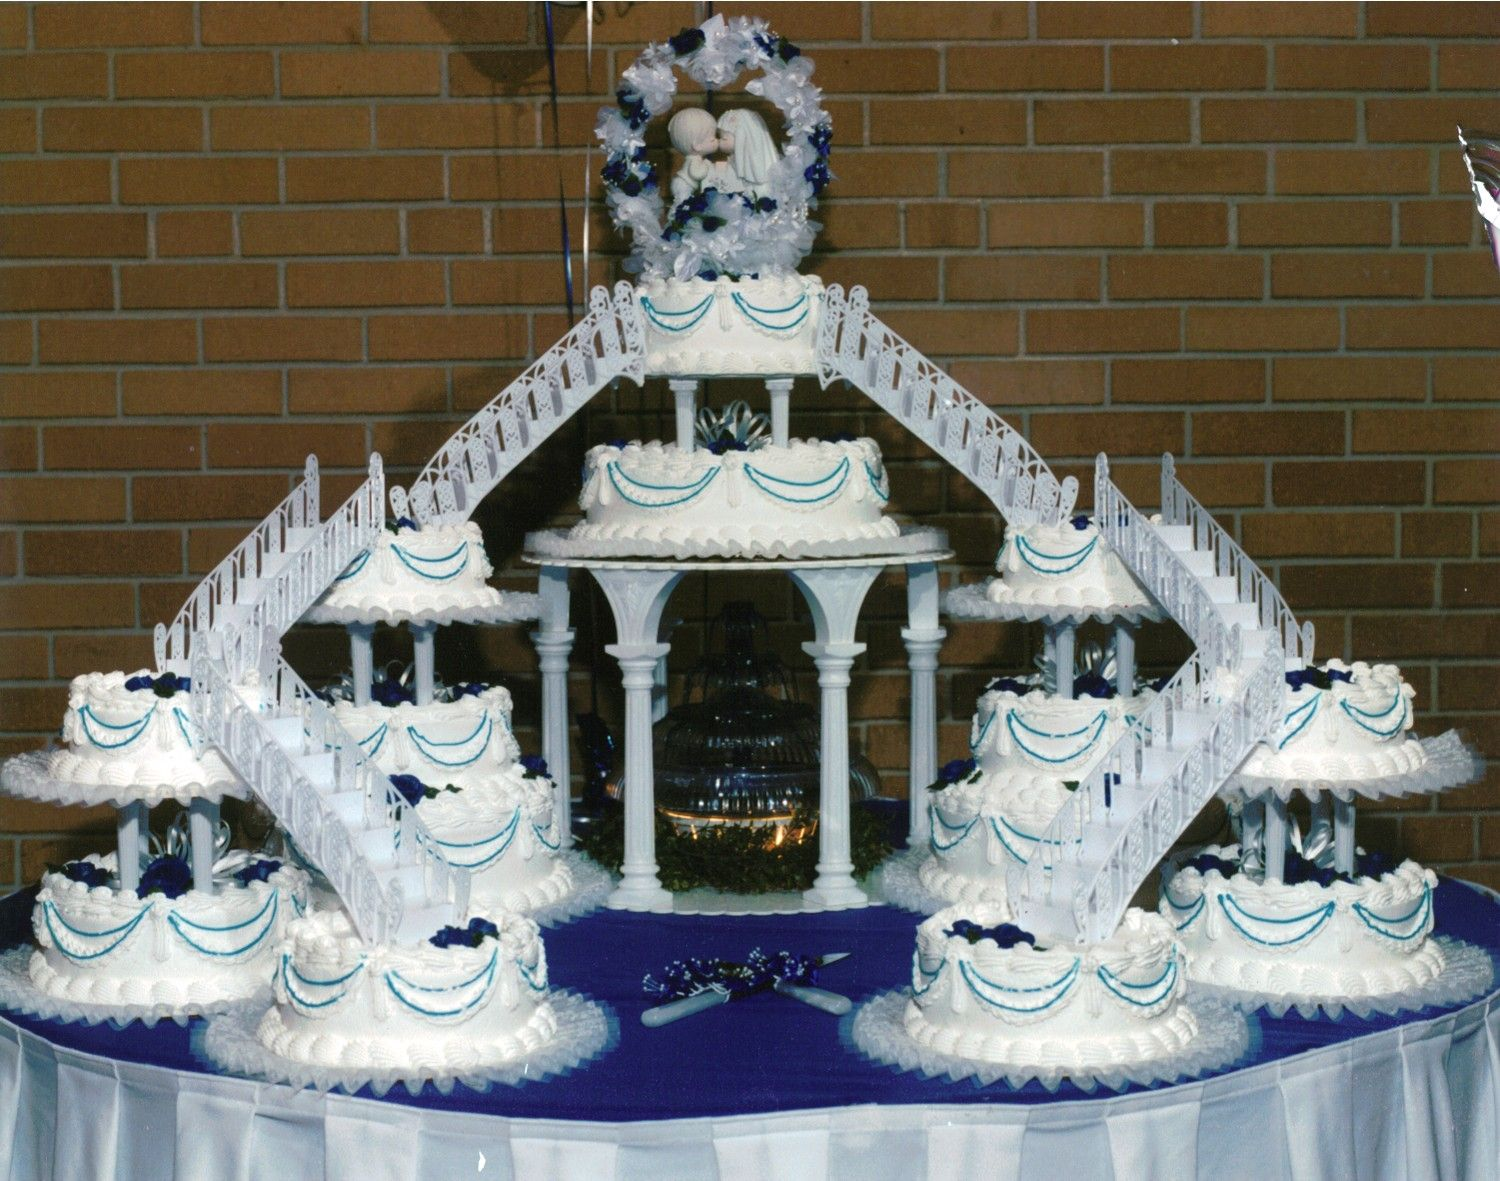 Mc Arthurs Wedding Cake With Fountains And Bridges With A